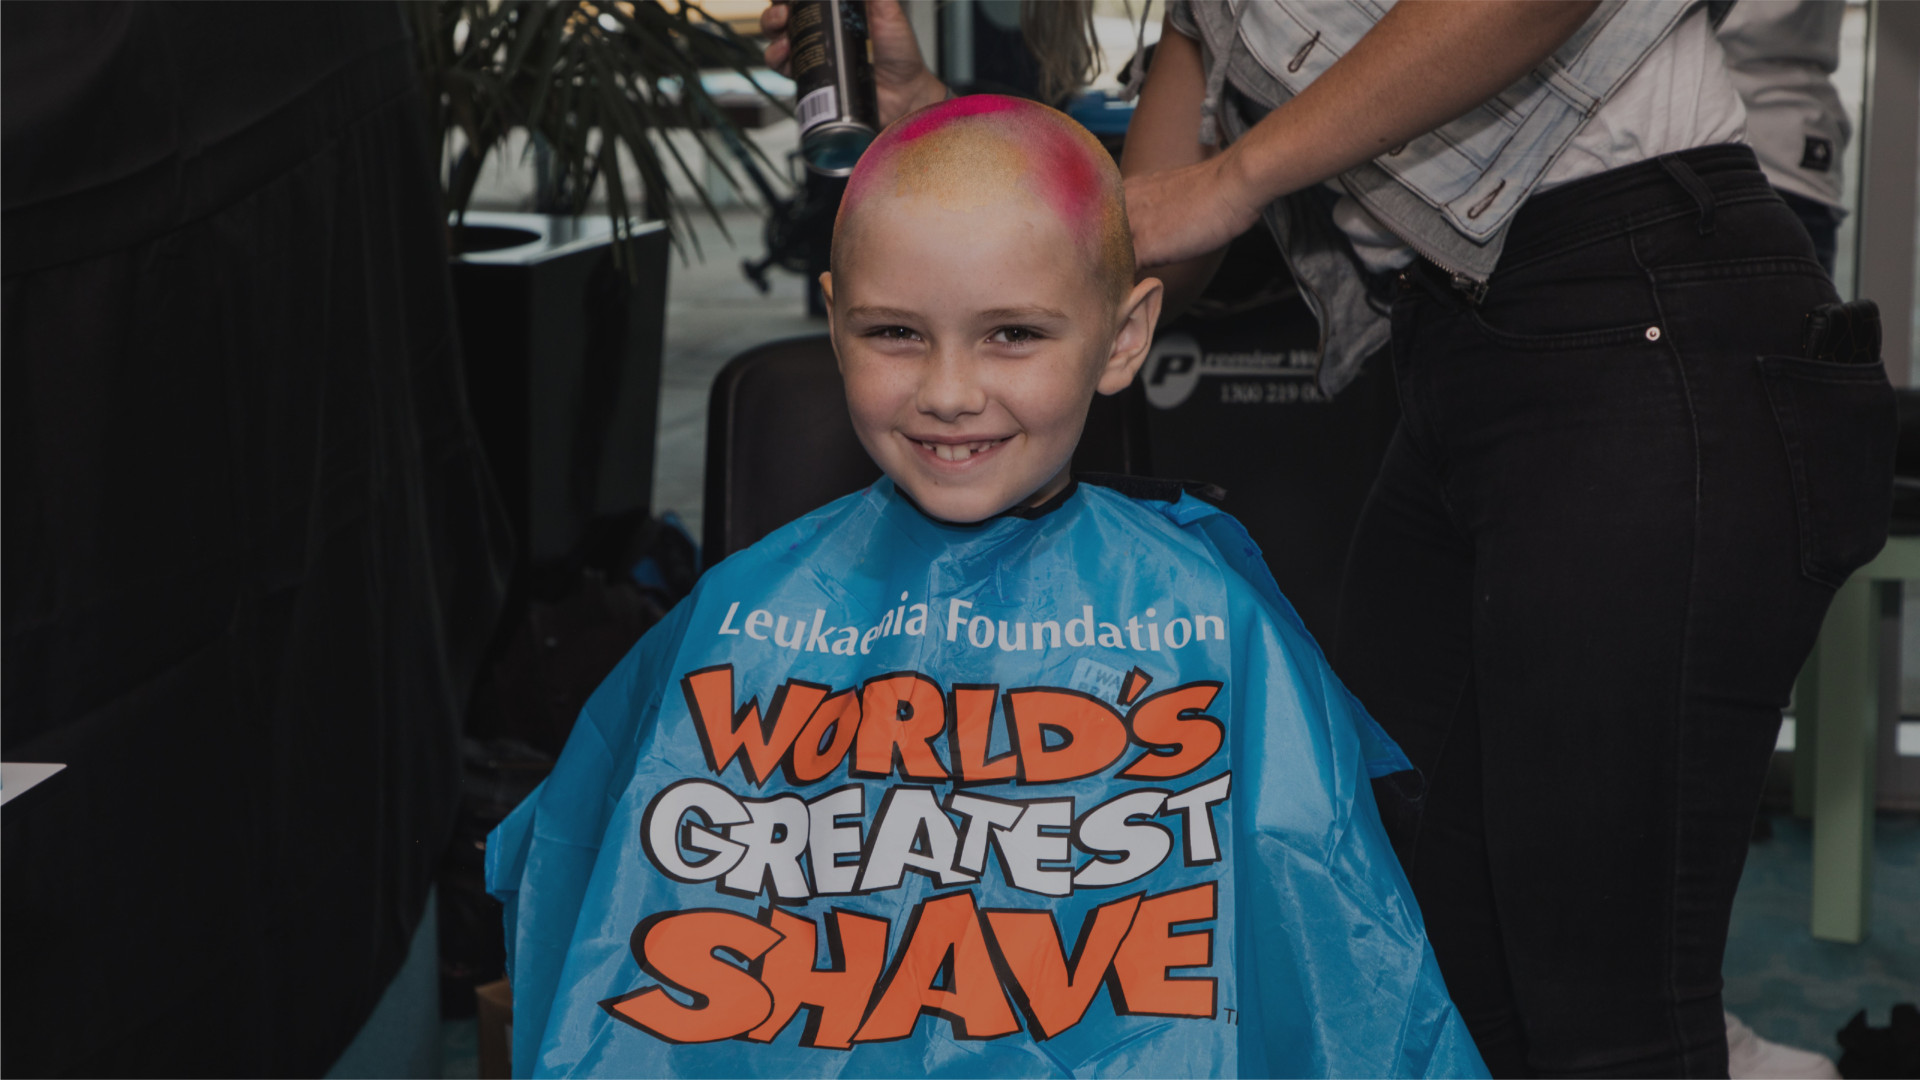 Child with shaved head